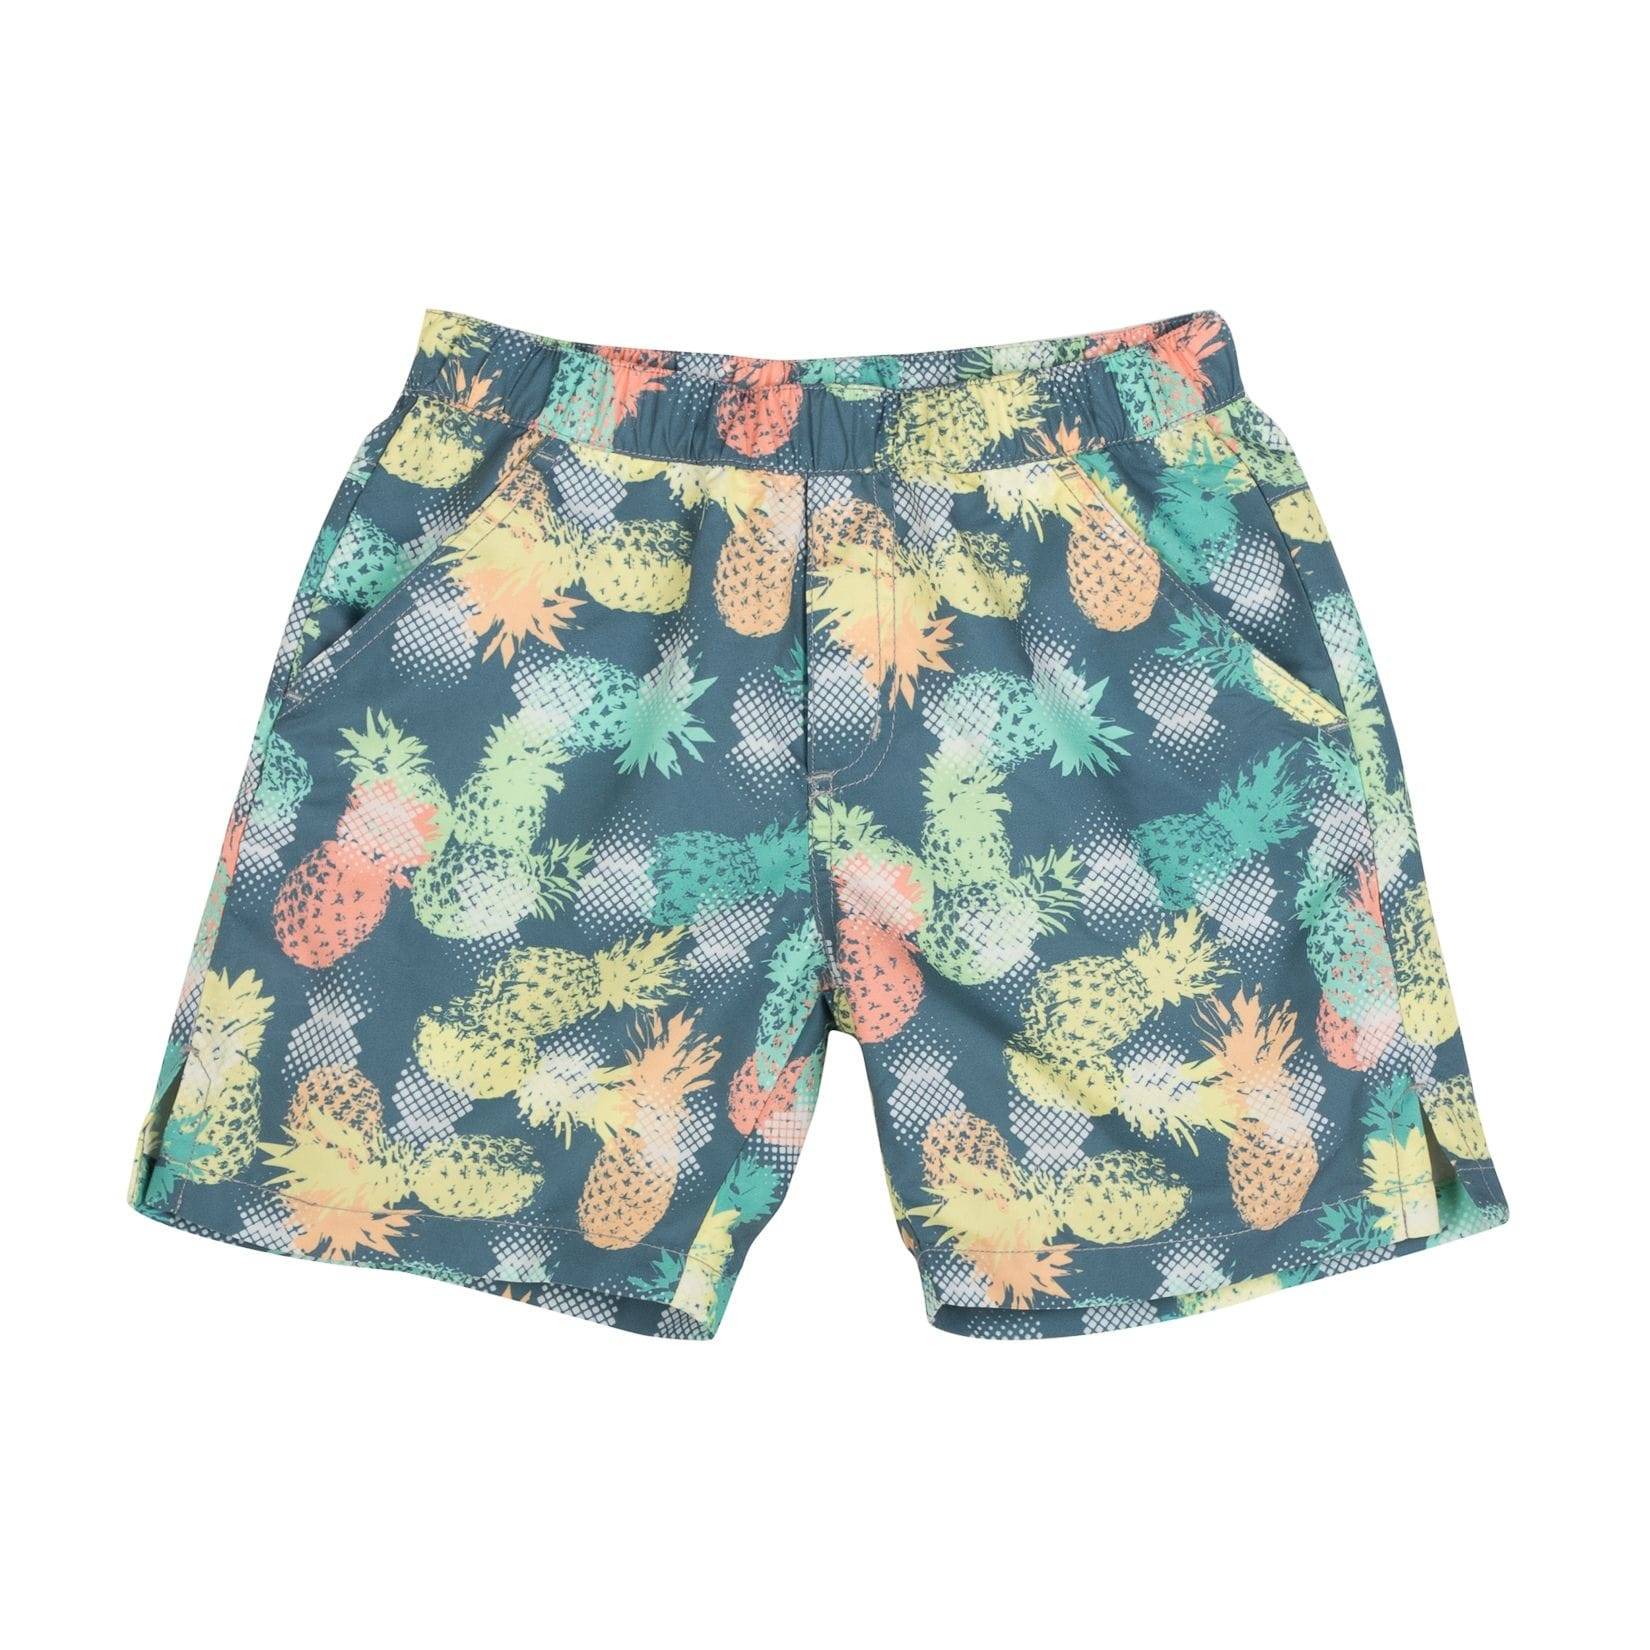 Paper Wings - Short Boardshorts - Pine Proof